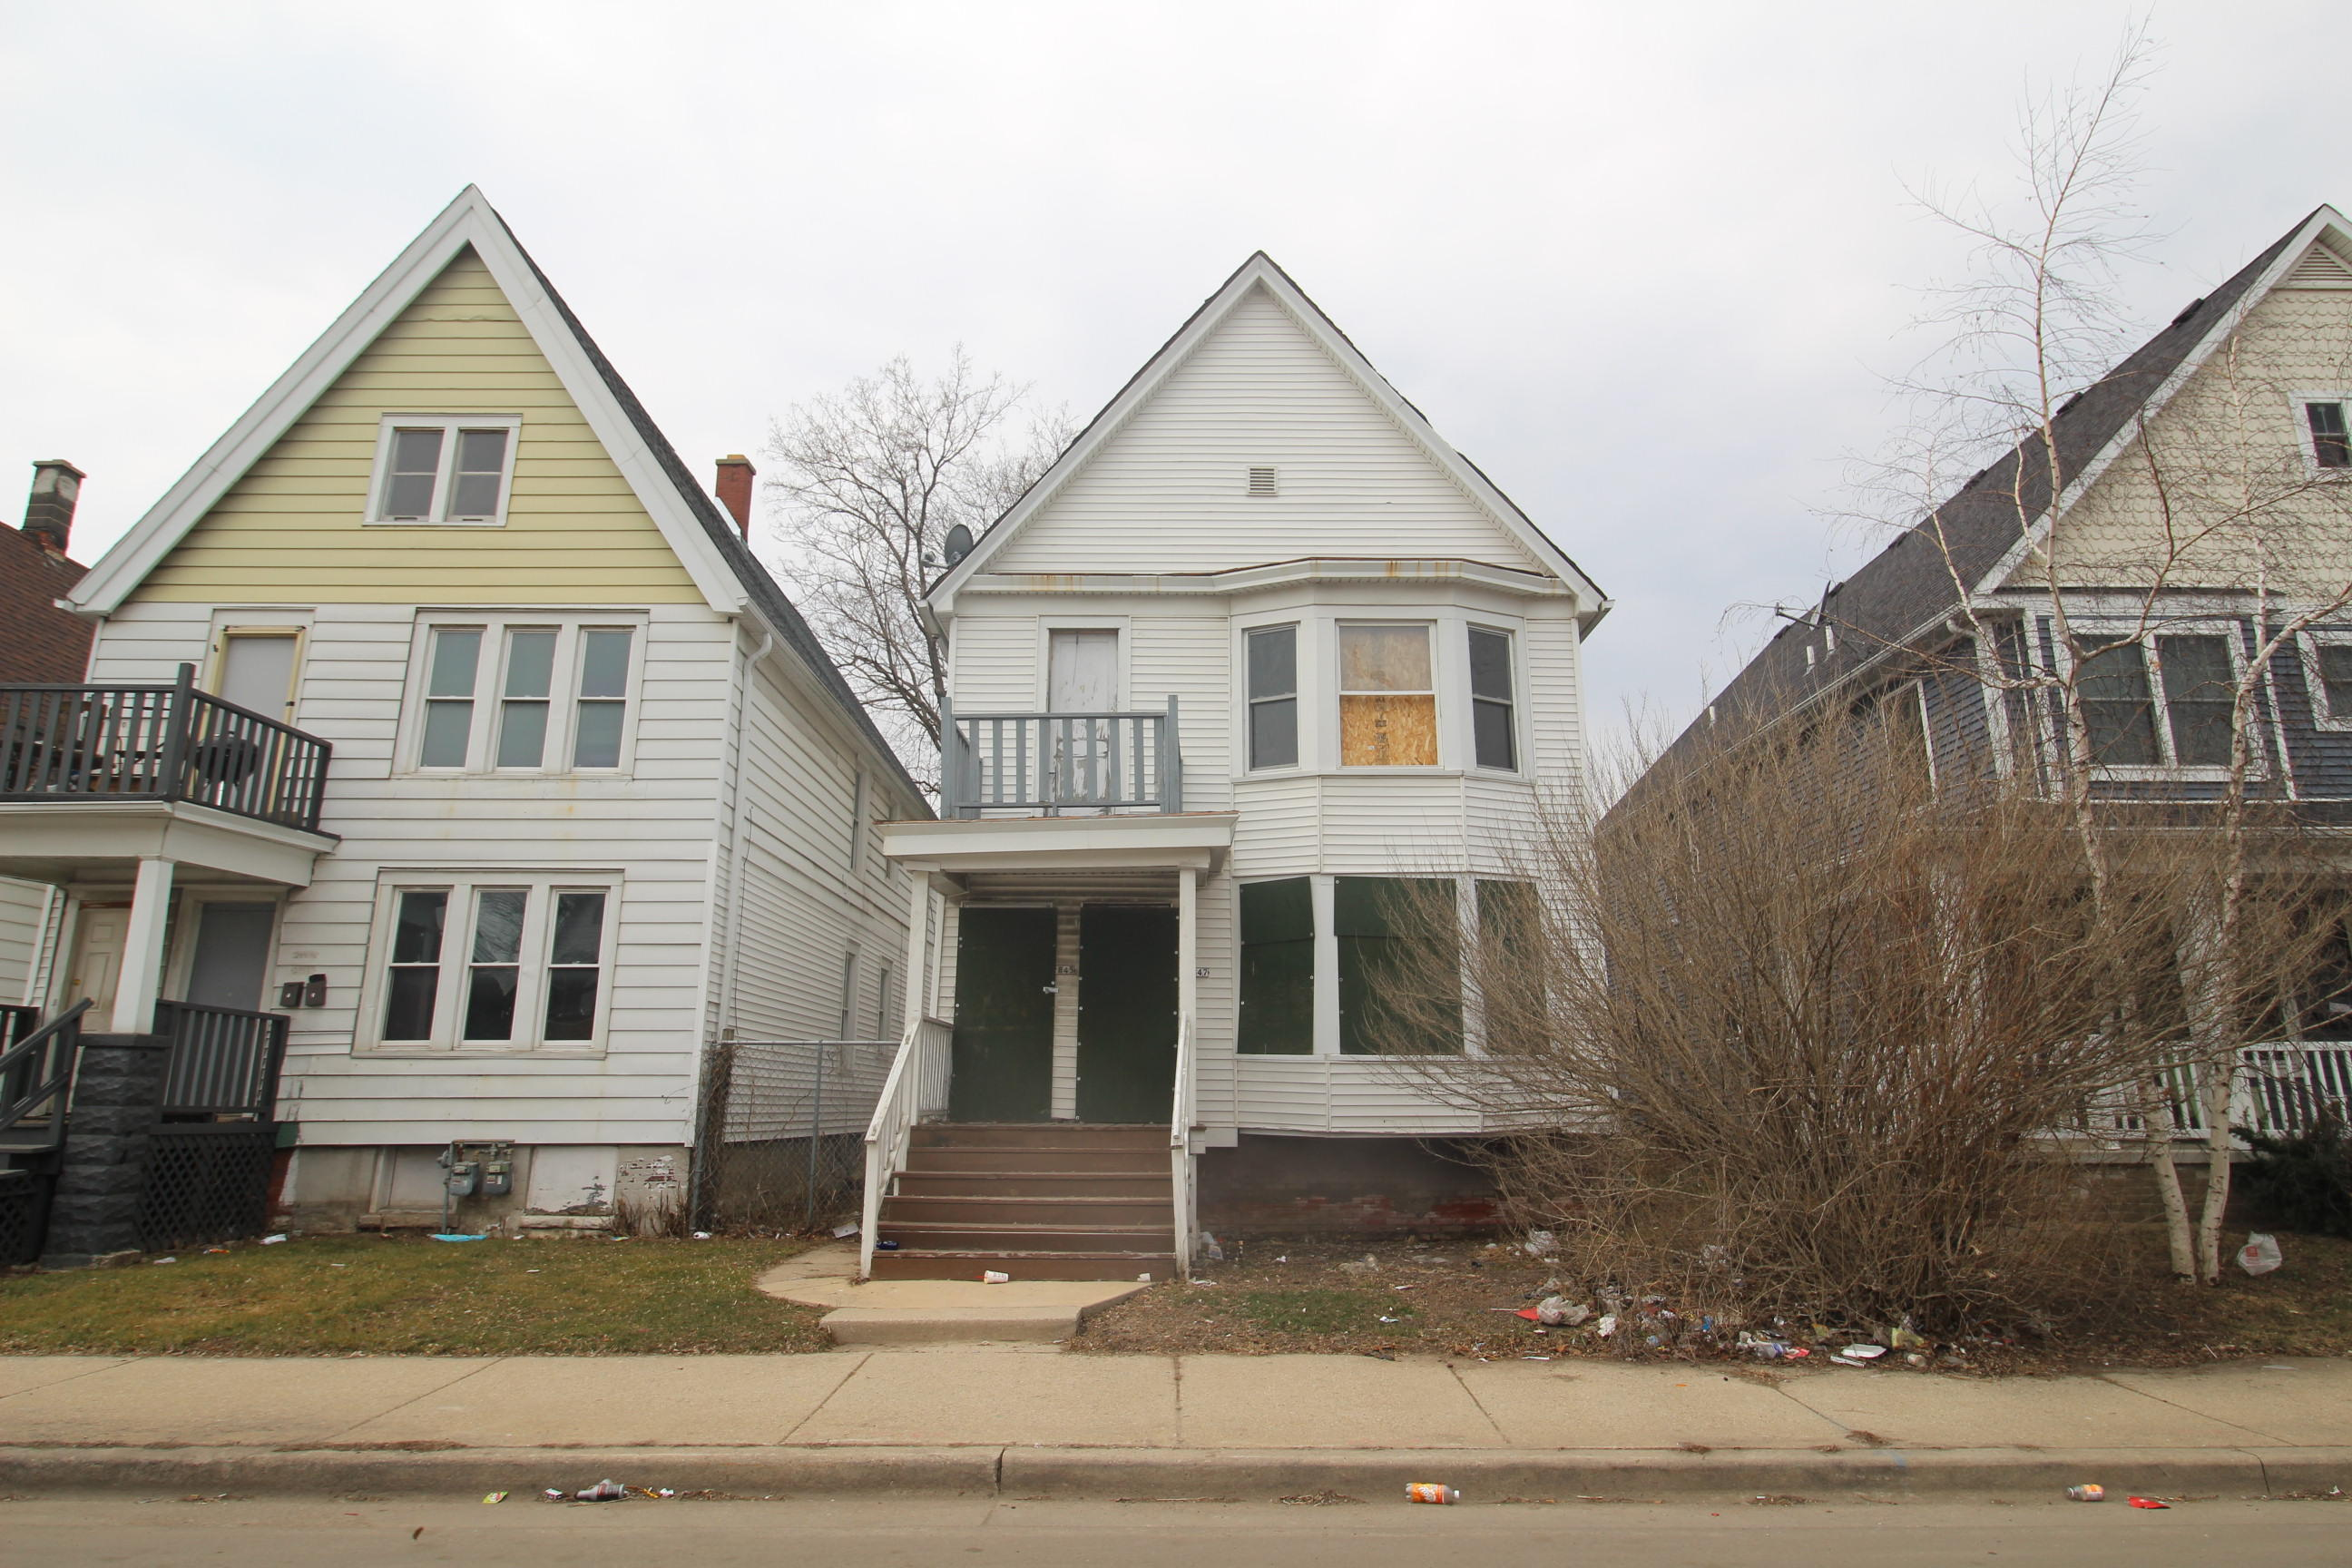 2845 27th St, Milwaukee, Wisconsin 53210, 2 Bedrooms Bedrooms, 5 Rooms Rooms,1 BathroomBathrooms,Two-Family,For Sale,27th St,1,1628338